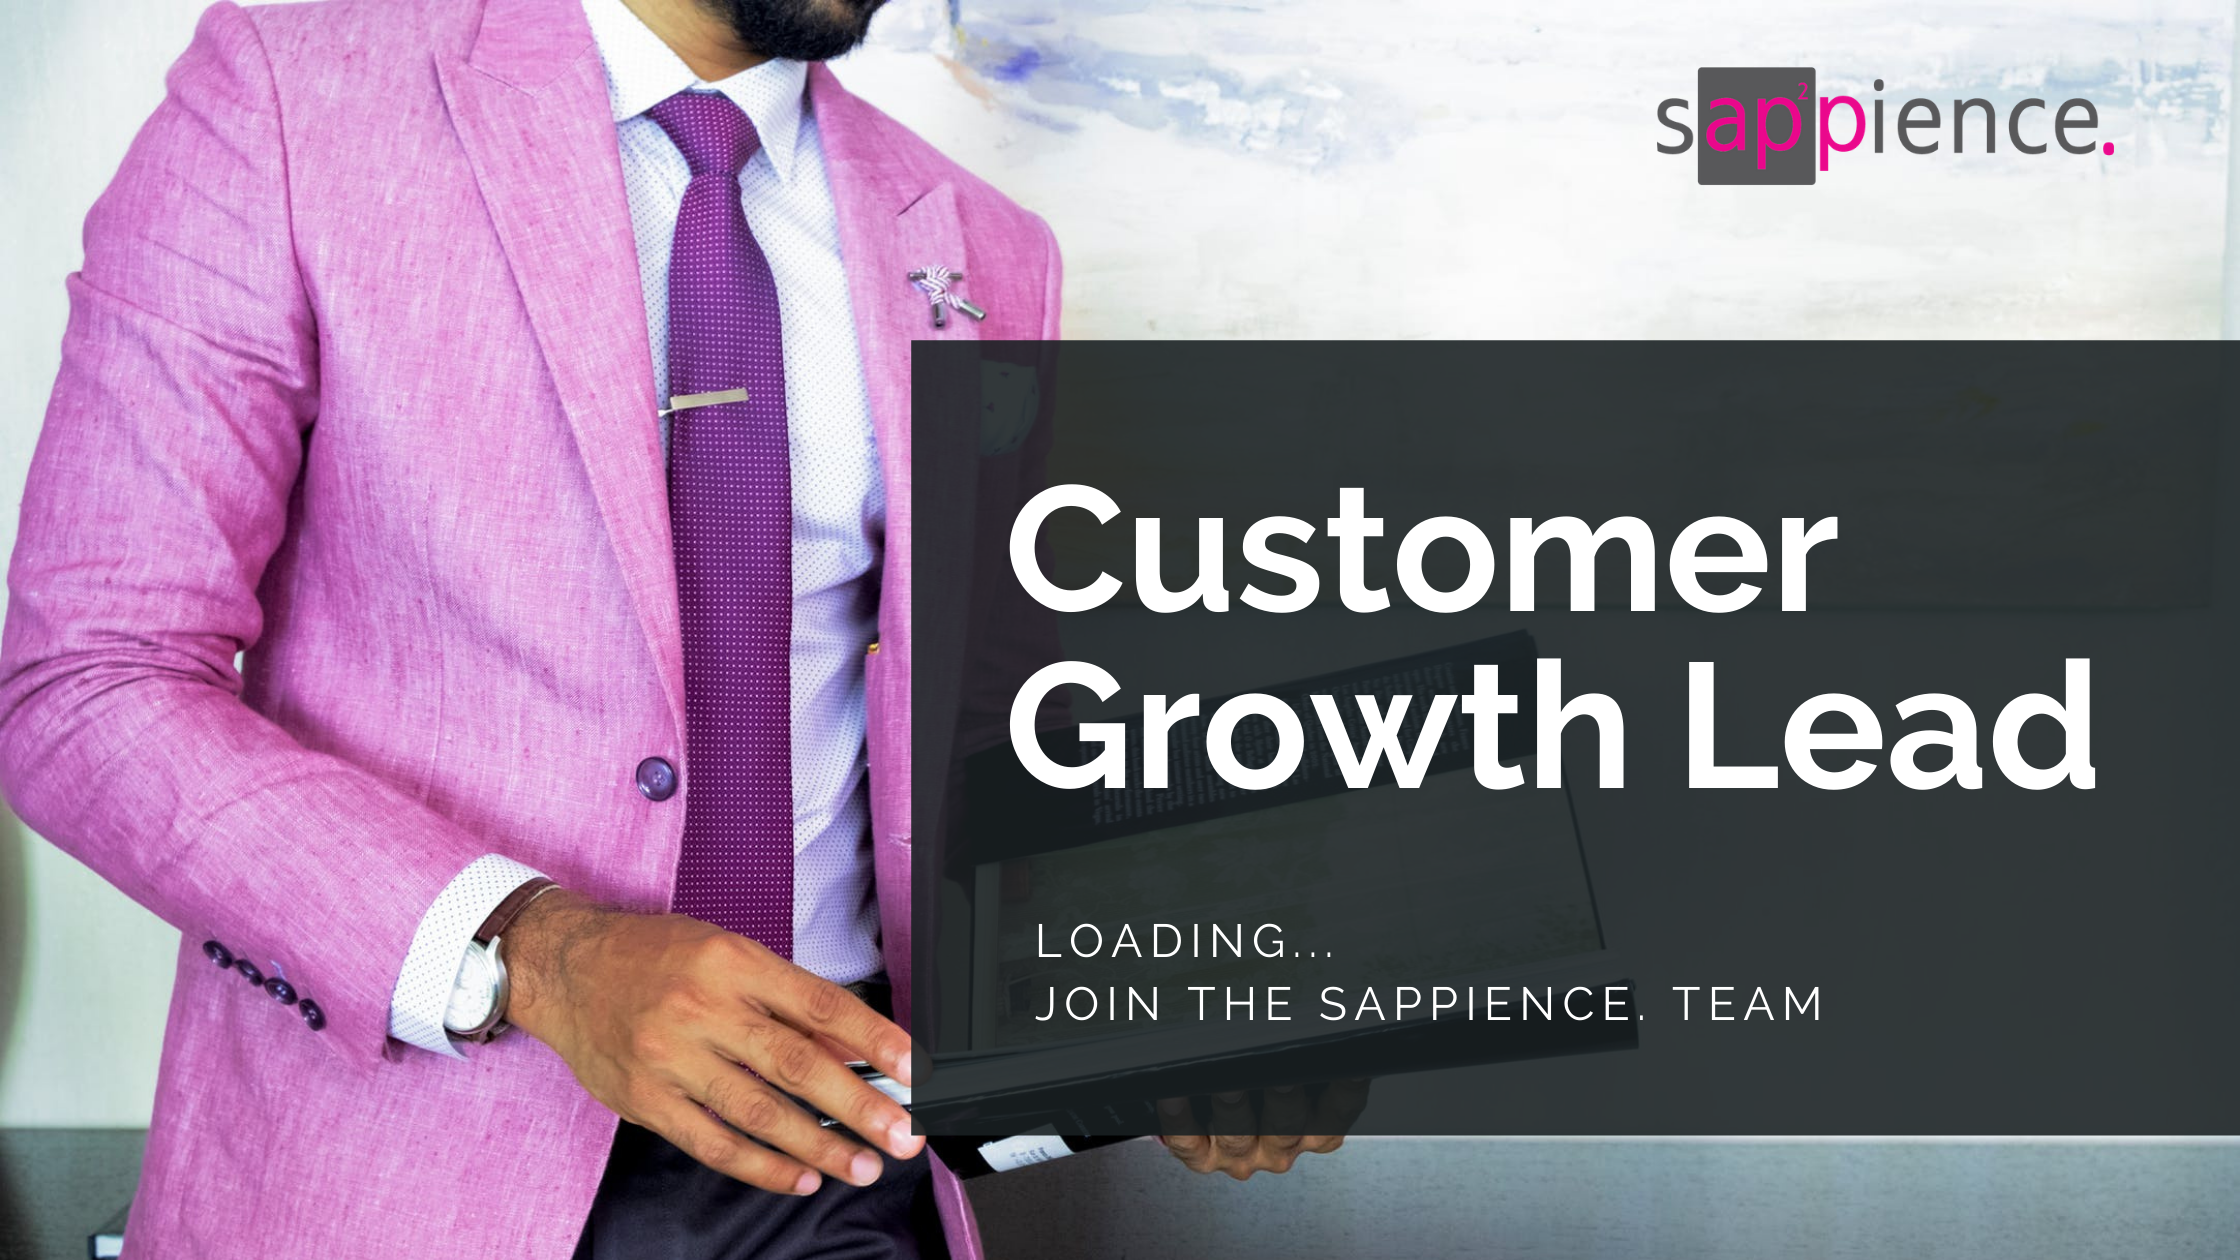 Join the sappience team as our Customer Growth Lead